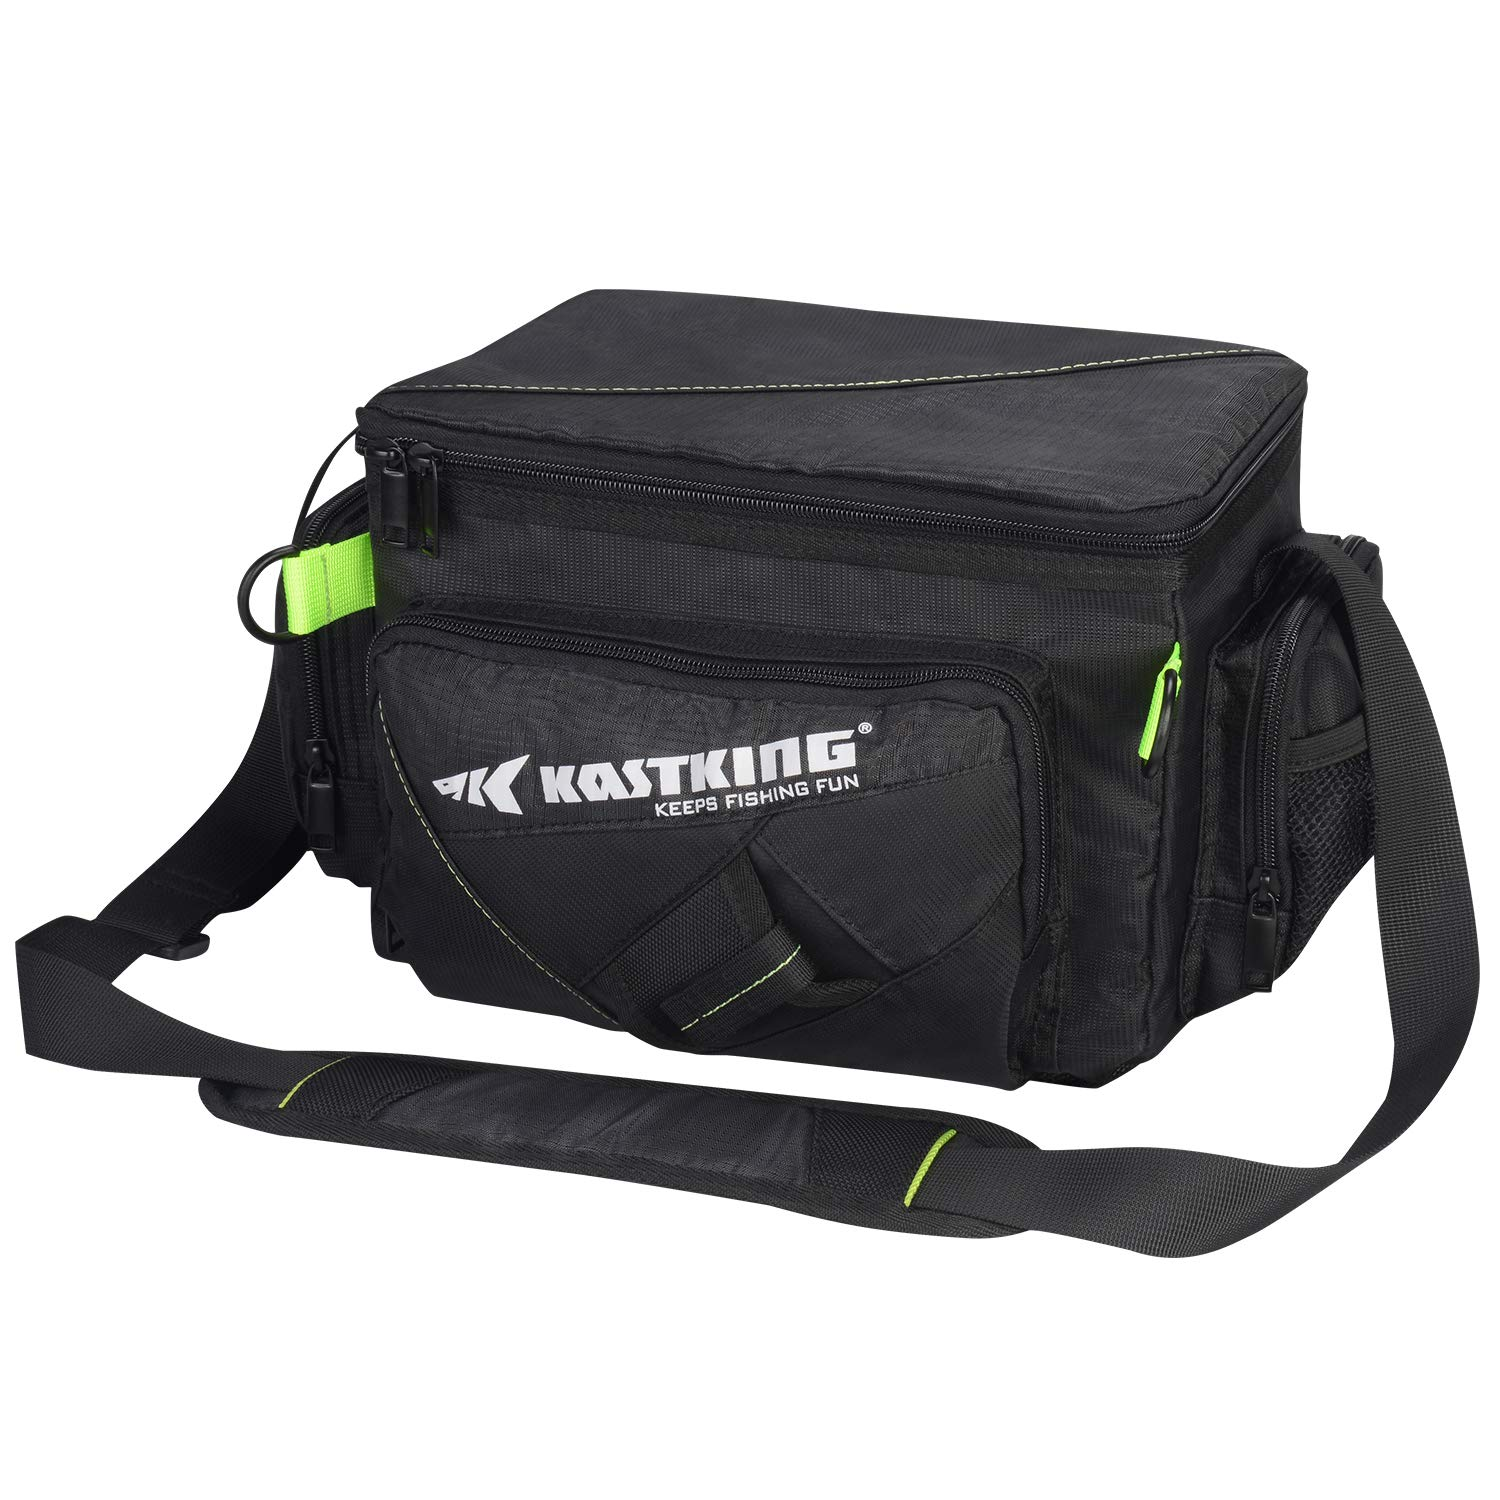 KastKing Tackle Bags - Fishing Bags - Fishing Tackle Bag with Waterproof Pocket - Fishing Gear Bag for 3600 3700 Tackle Box, Fishing Tackle